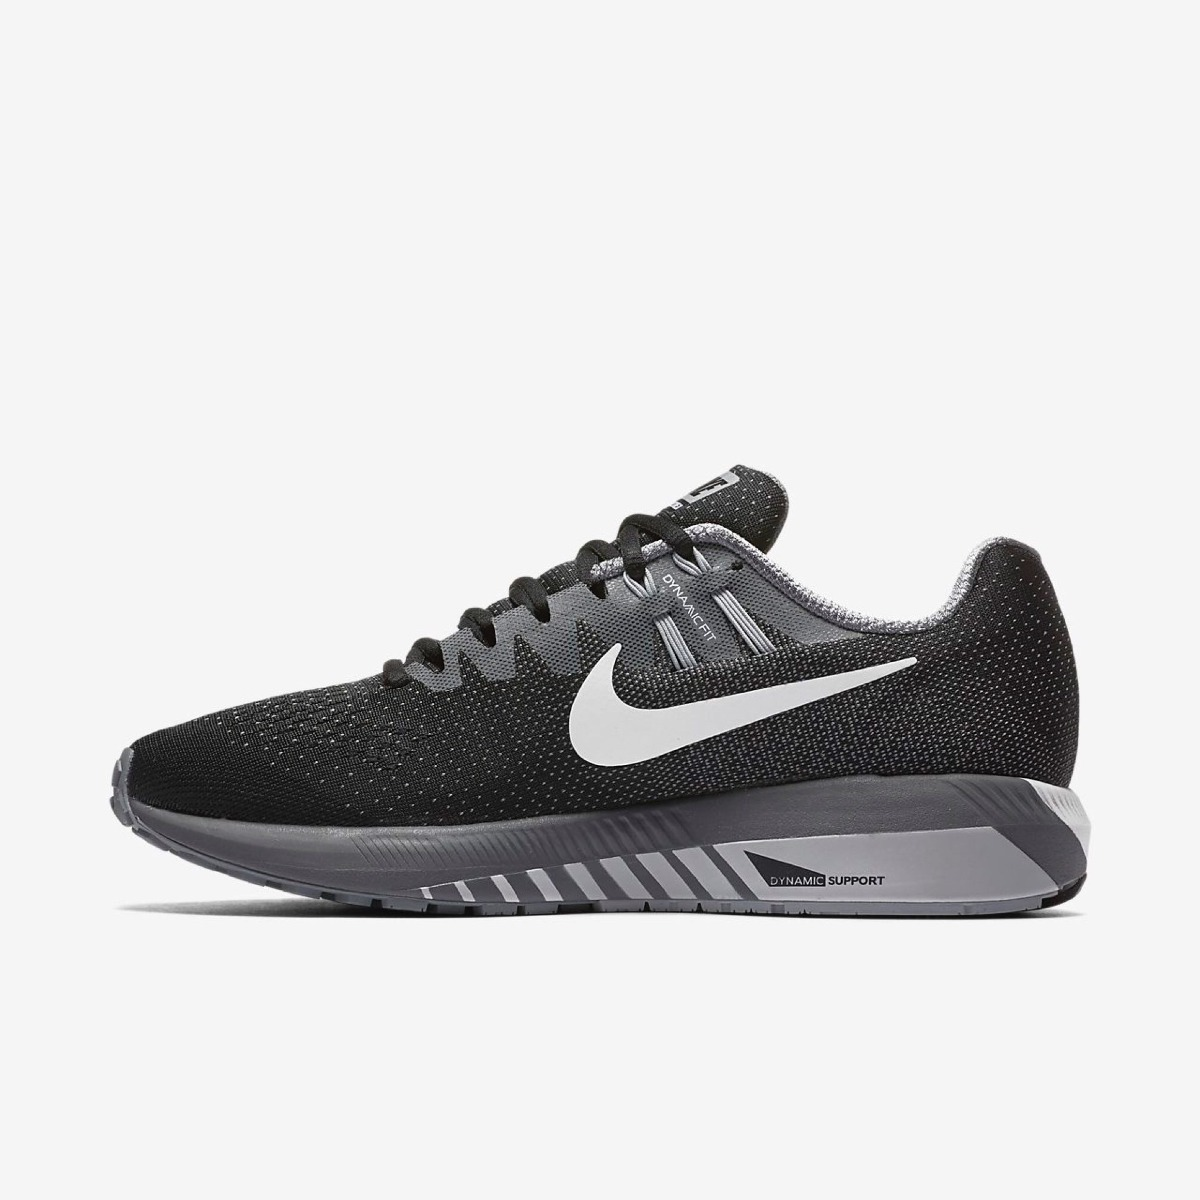 be54bc0d03c nike air zoom structure 20 talle us 6.5 uk 4 eur 37.5. Cargando zoom.